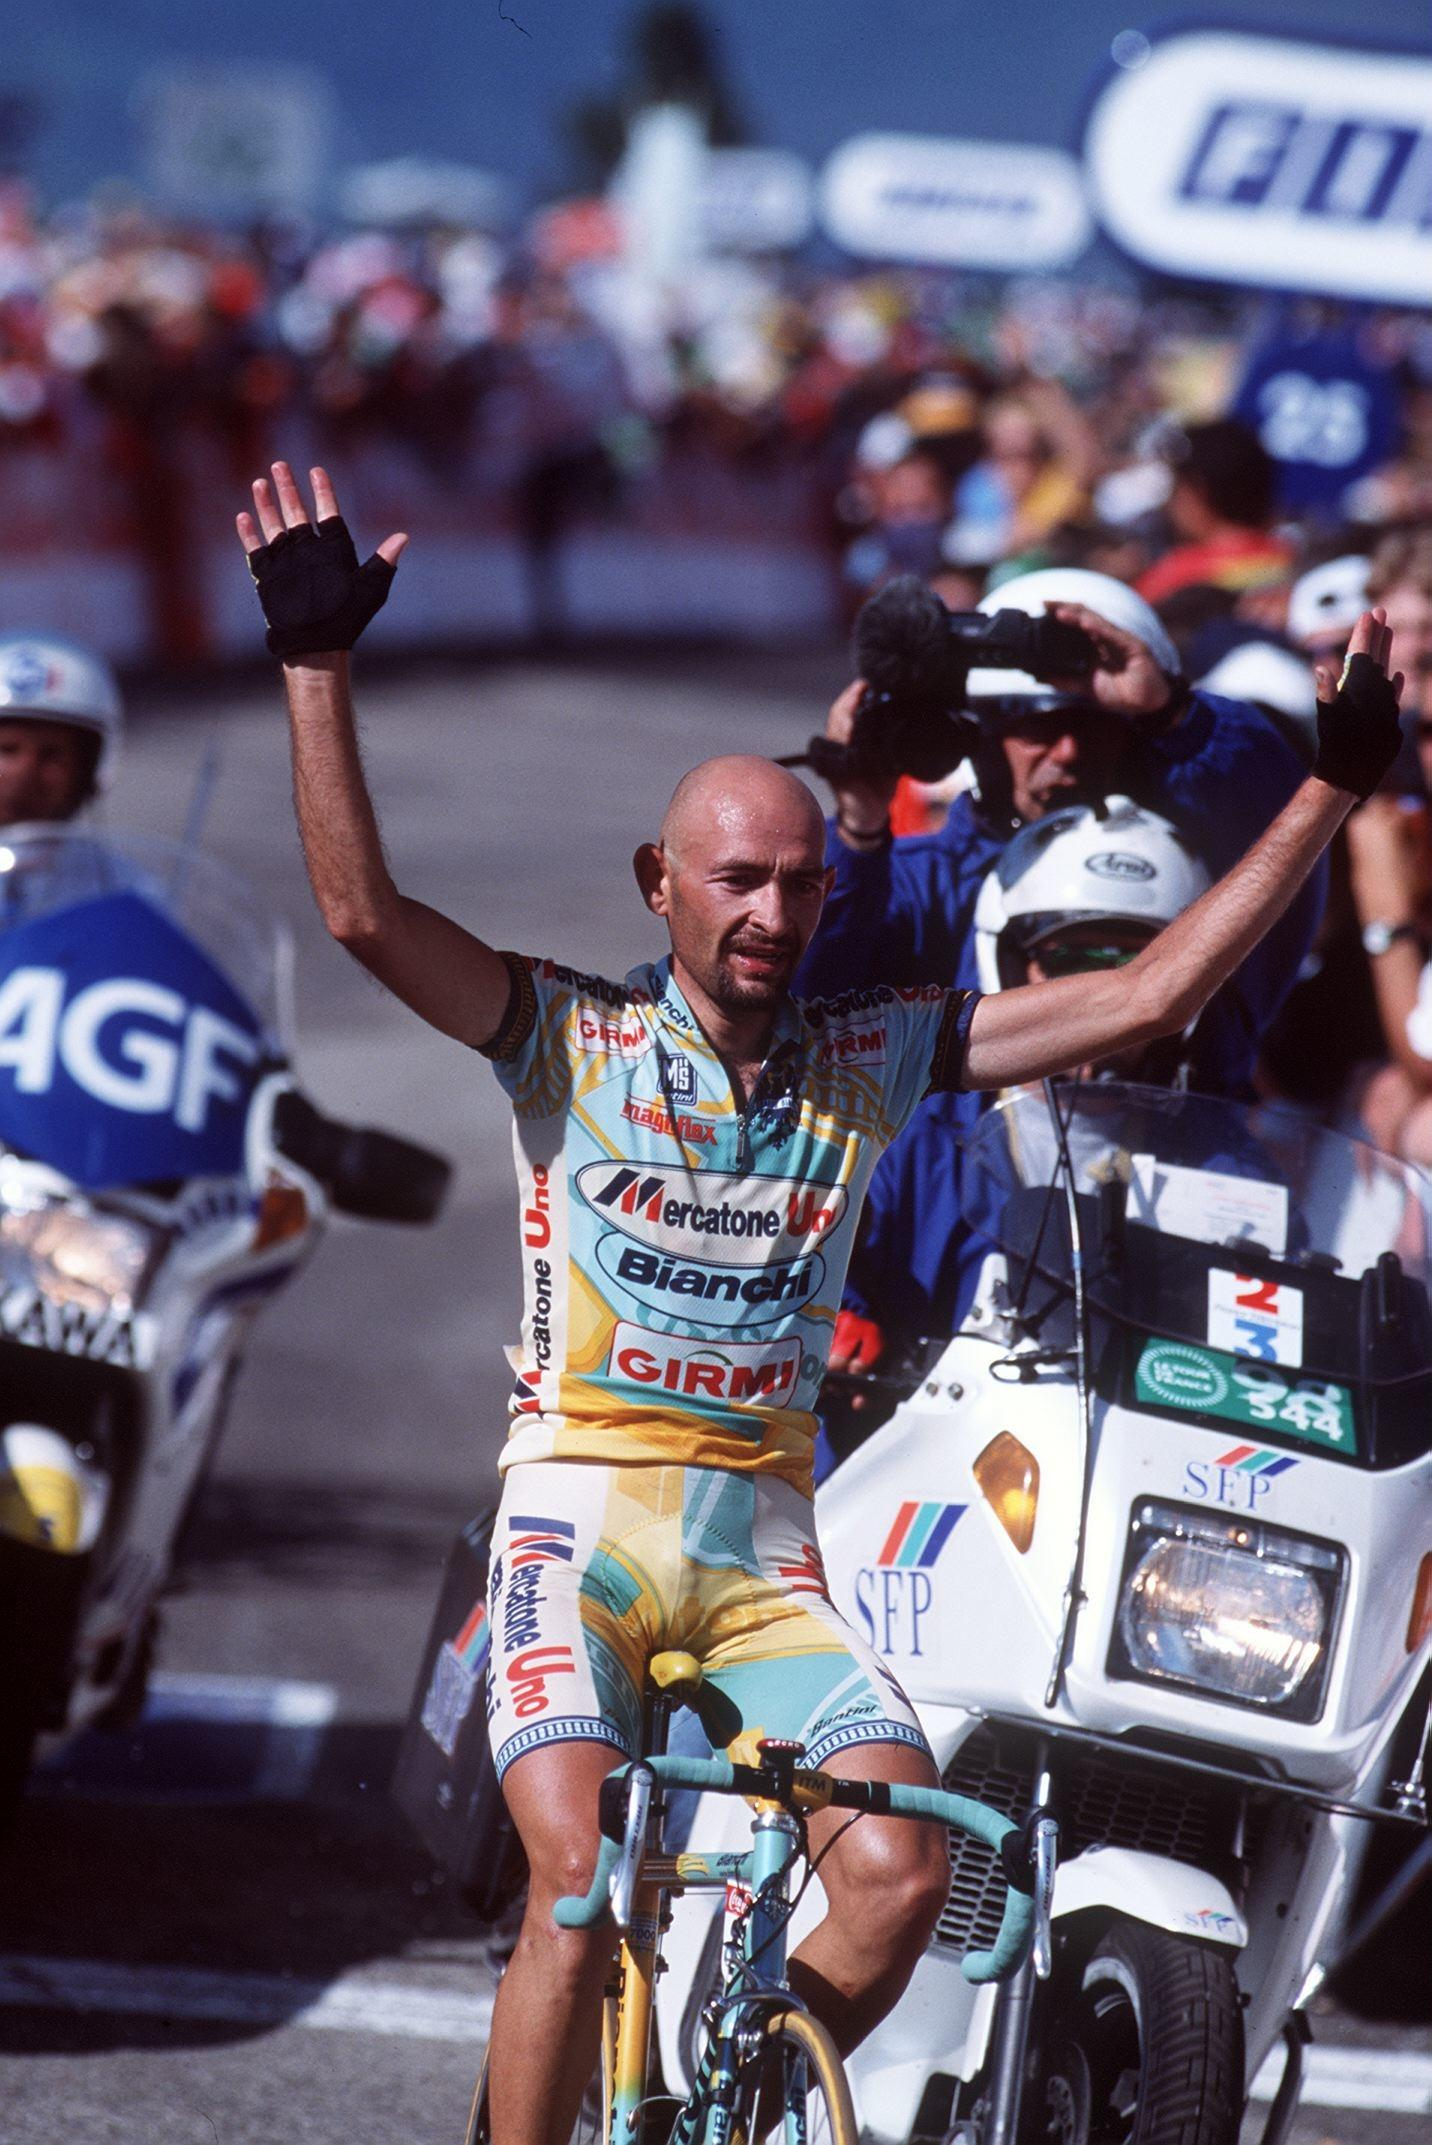 Marco Pantani made the three fastest ascents of Alpe d'Huez, but his achievements are tainted with doping